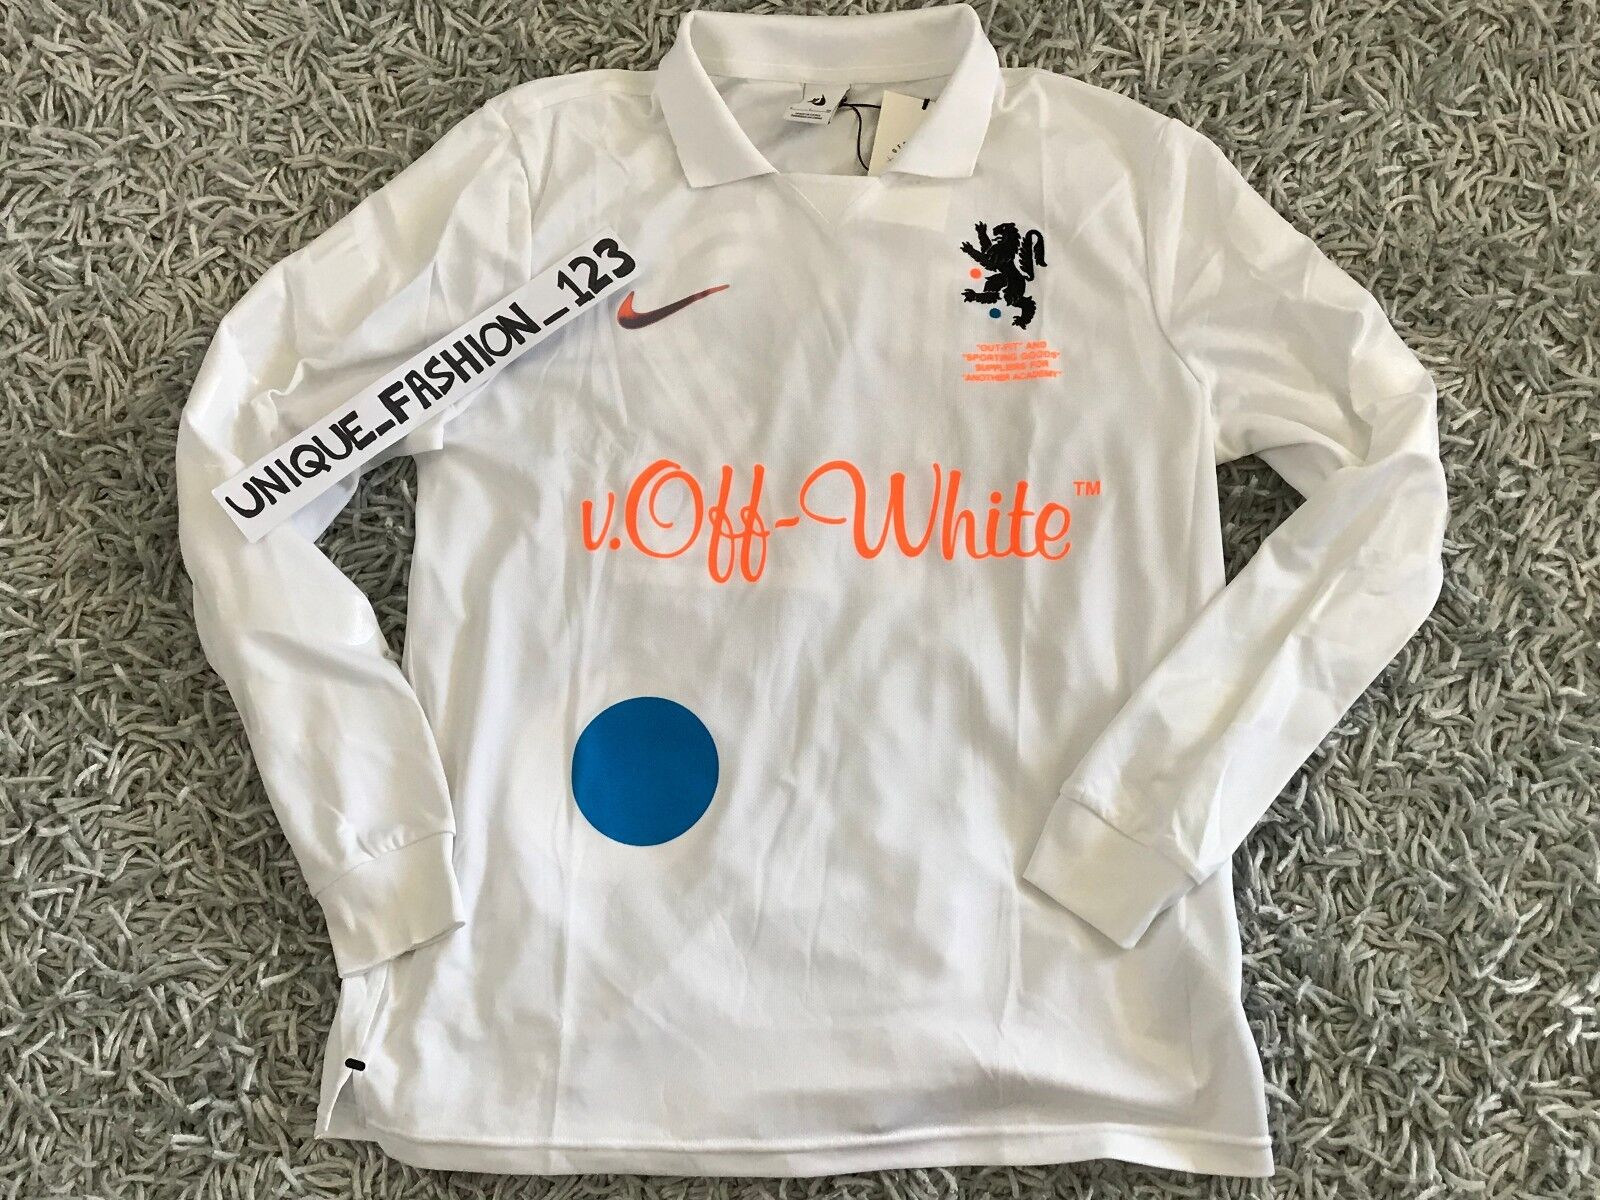 NIKE LAB X OFF WHITE FOOTBALL HOME JERSEY SHIRT S WHITE MON AMOUR SMALL BLAC